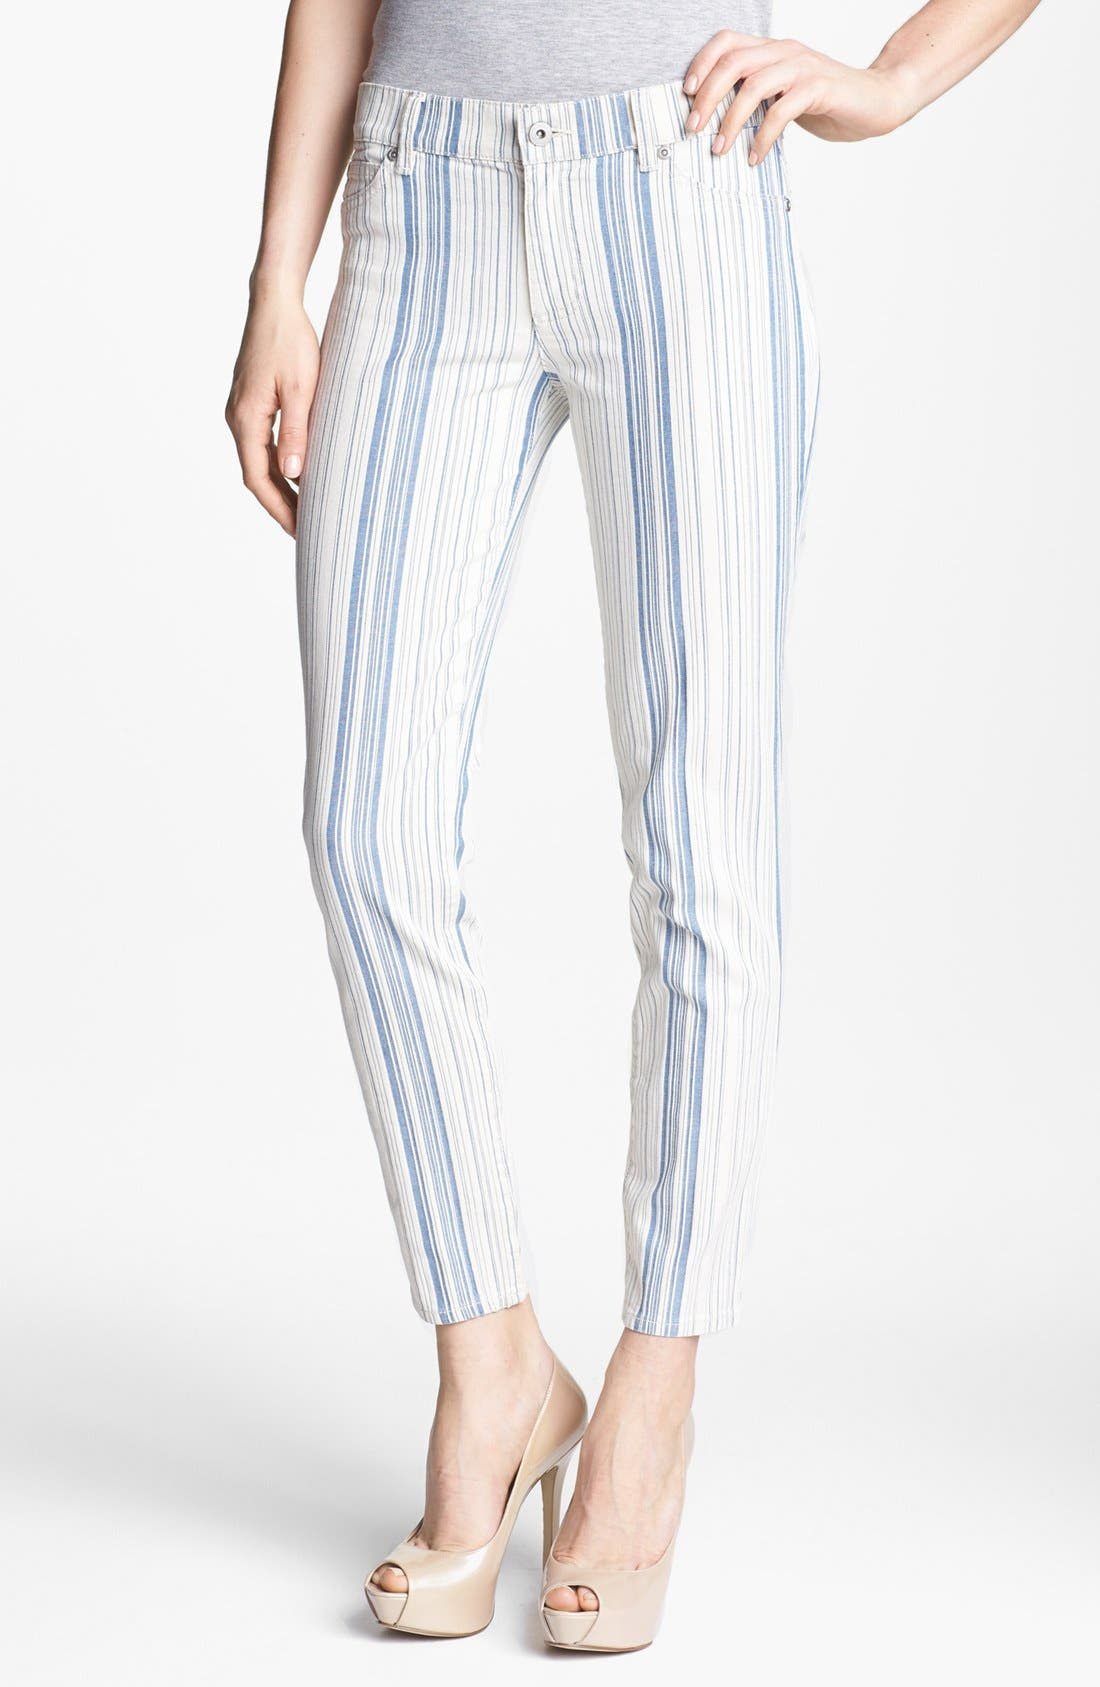 Main Image - Two by Vince Camuto Variegated Stripe Zip Leg Jeans